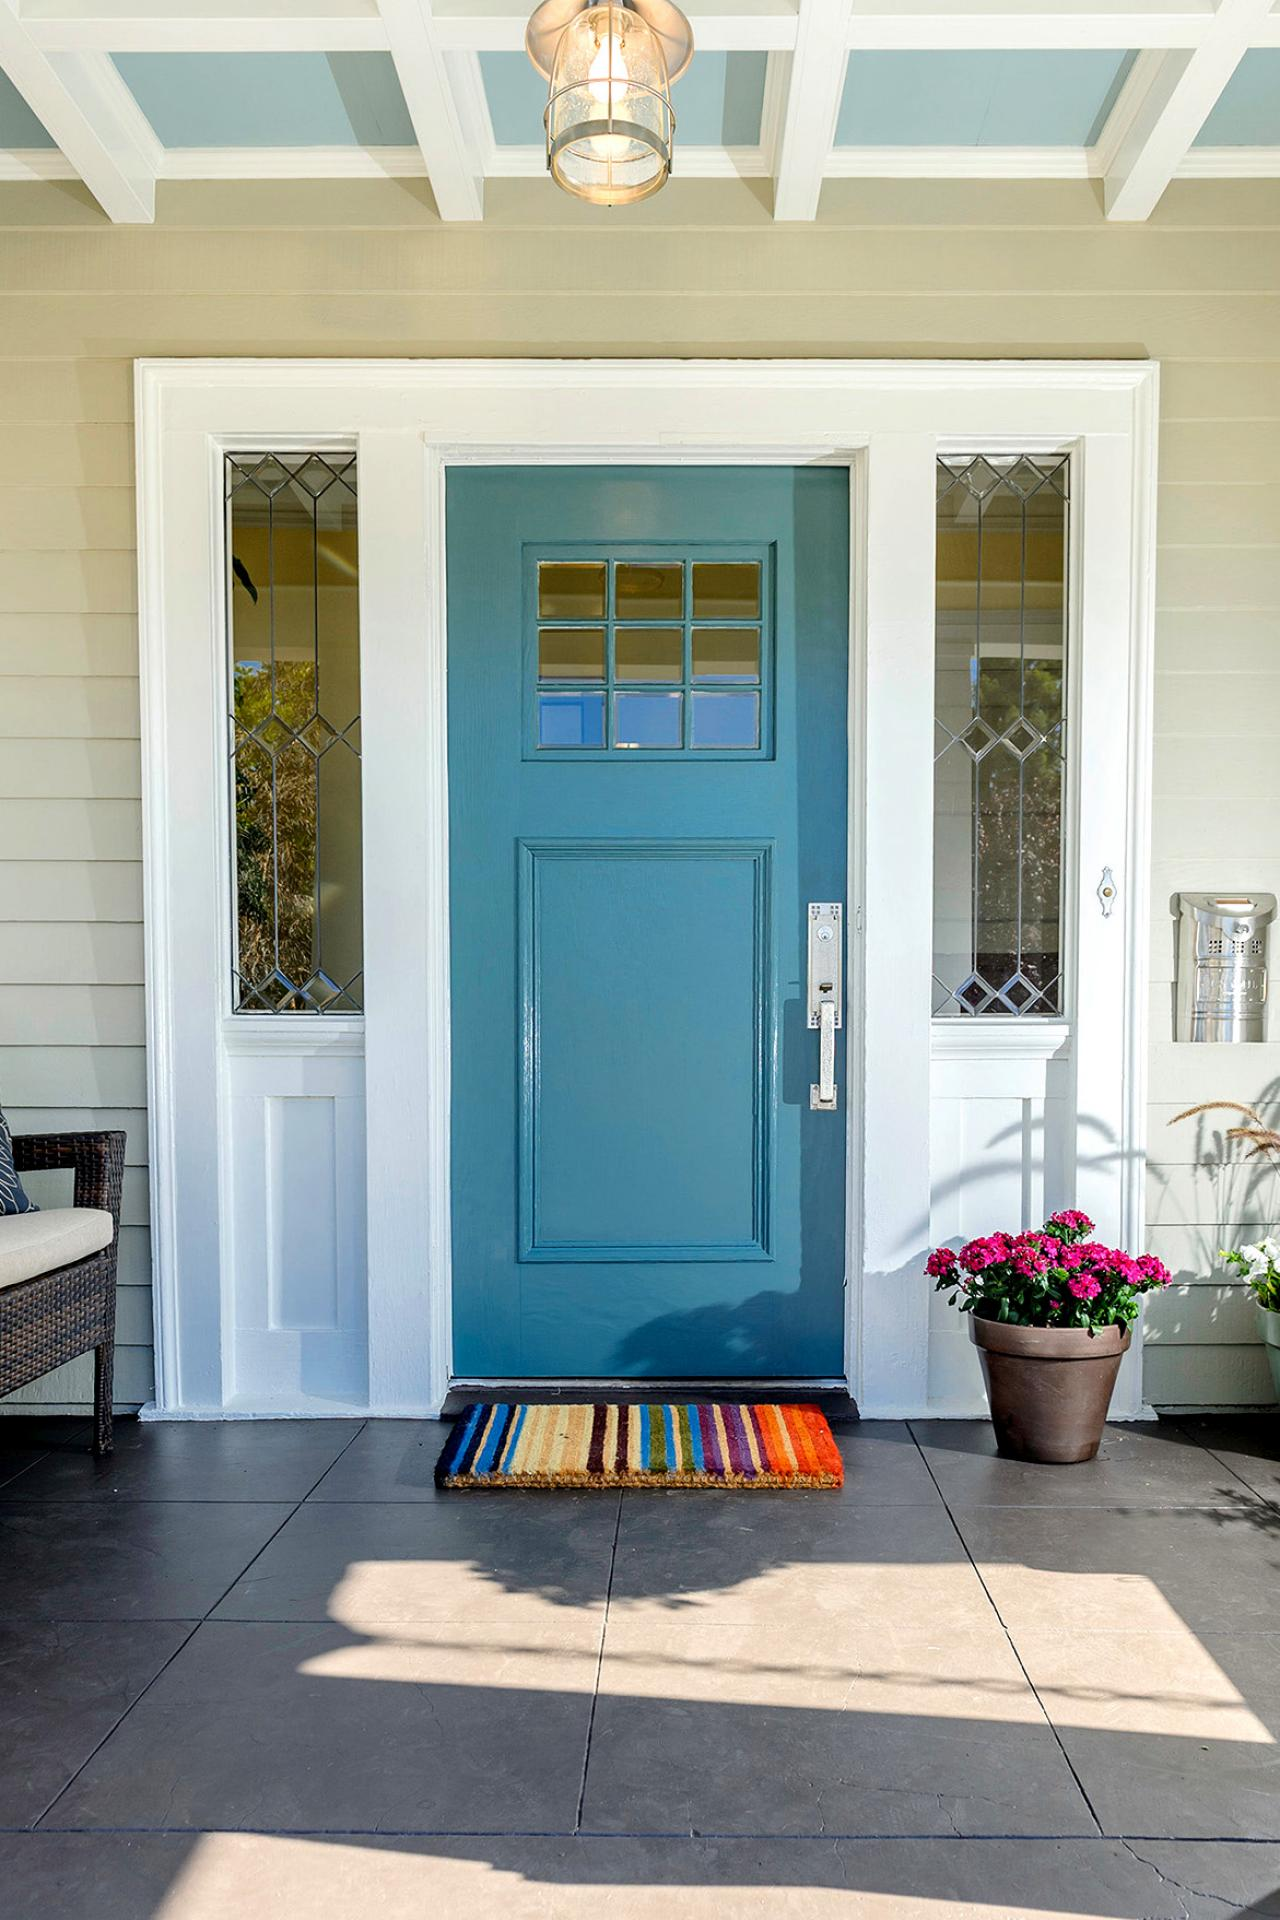 Photos hgtv Front door color ideas for beige house